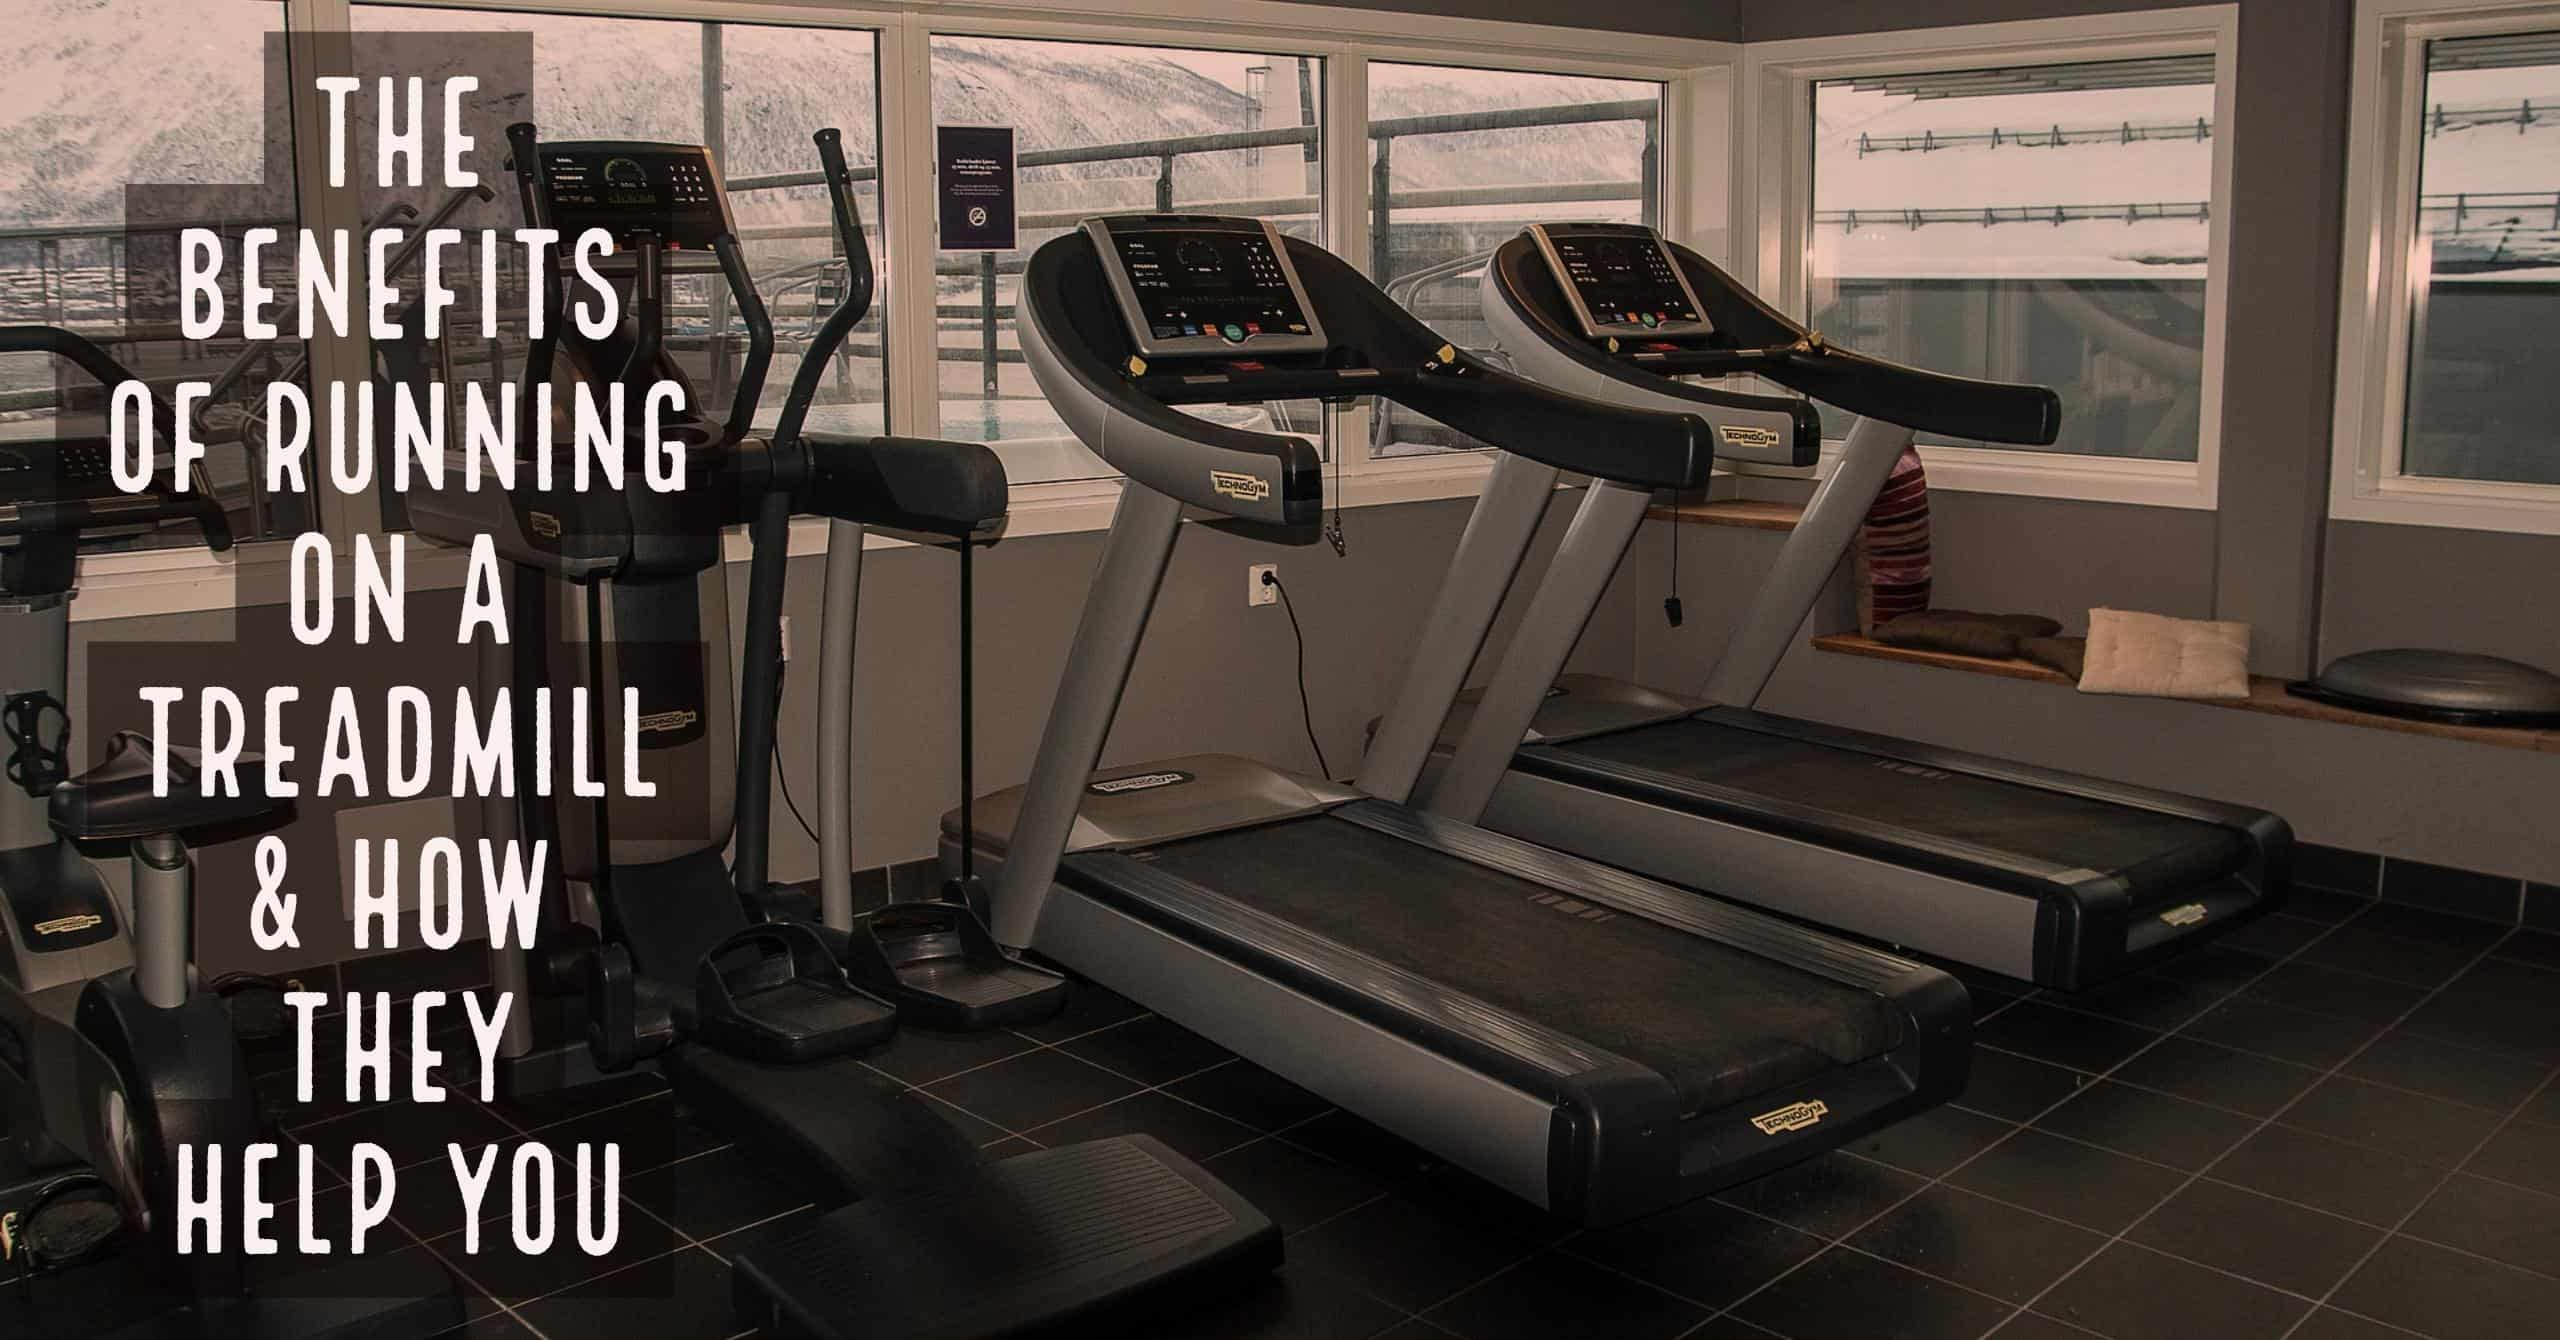 Running in general provides some tremendous benefits for your body. But what's the difference between outside and a treadmill? We break down the 7 benefits of running on a treadmill & how they help you